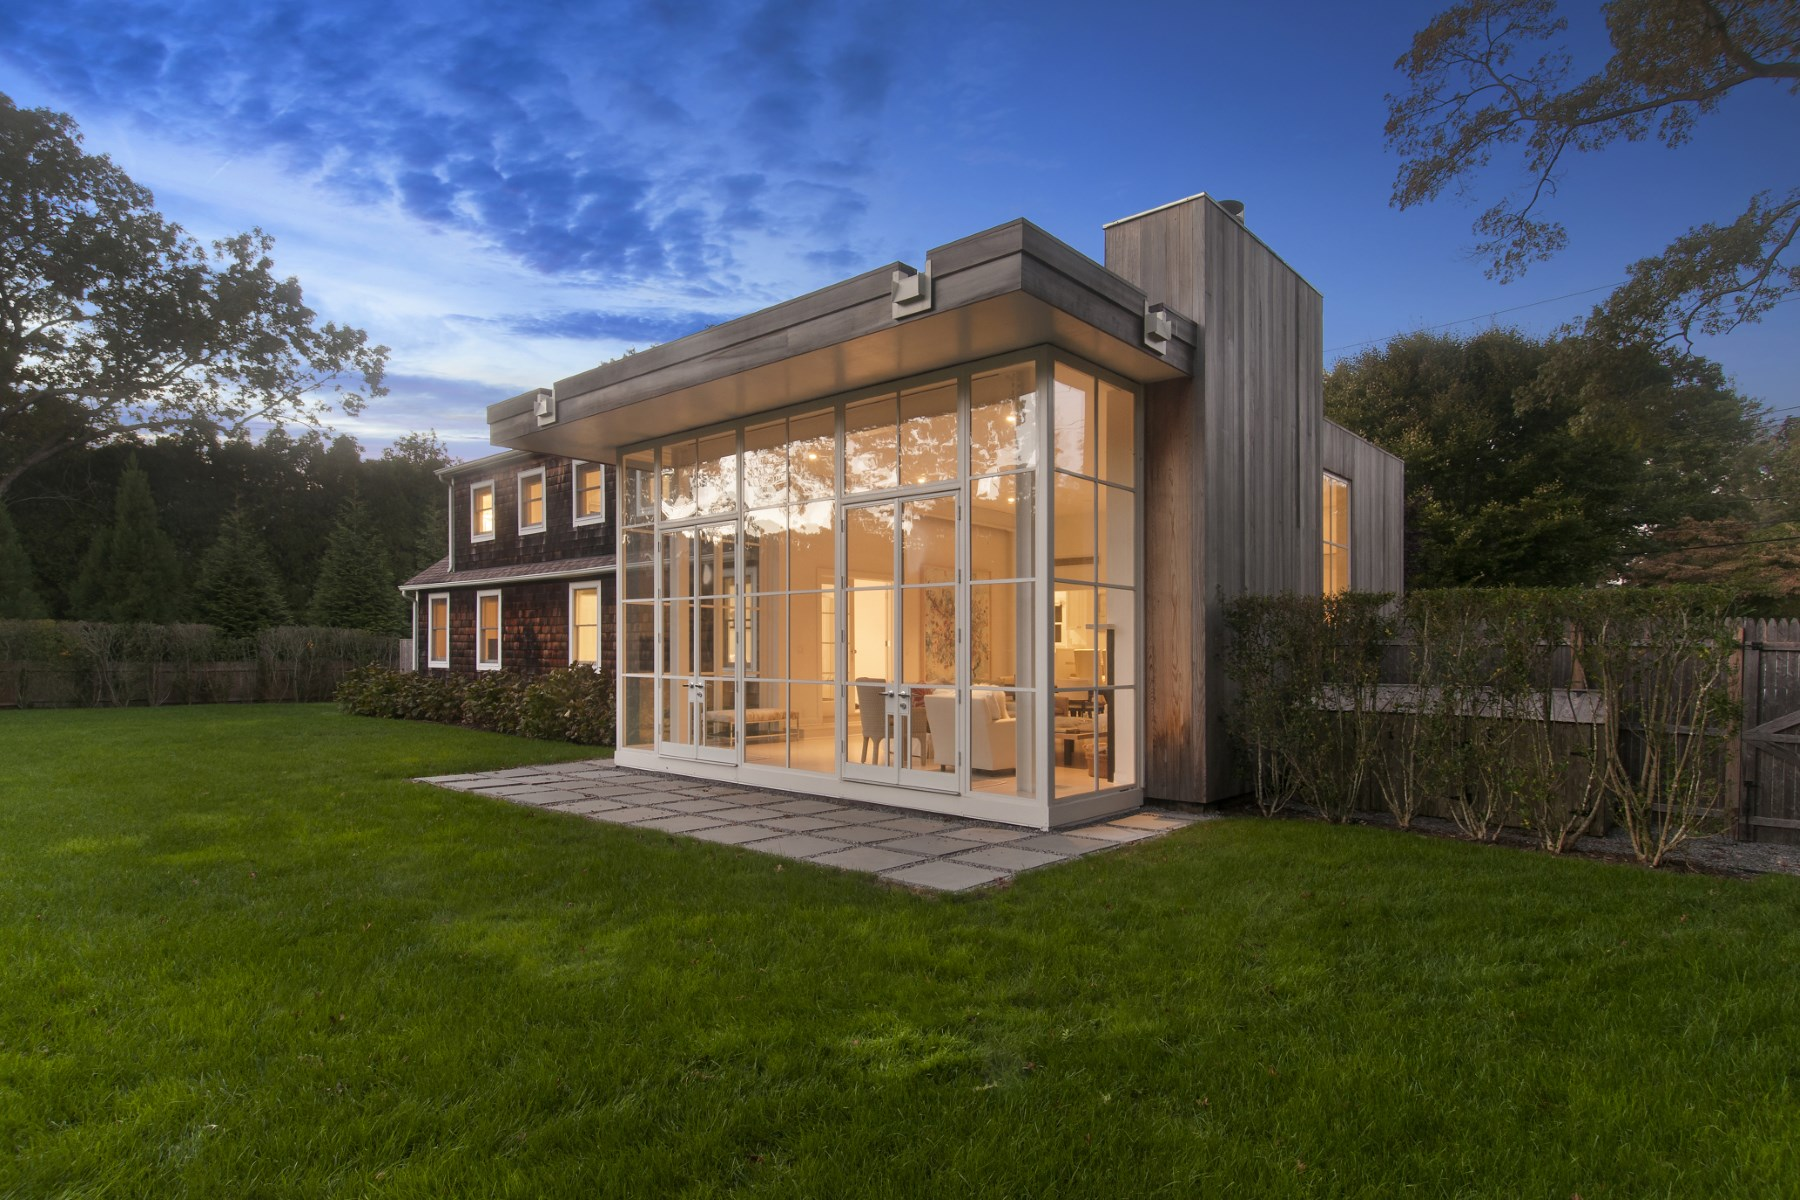 Single Family Home for Rent at Minutes To Village & Ocean Beaches 53 Buell Lane Extension East Hampton, New York 11937 United States